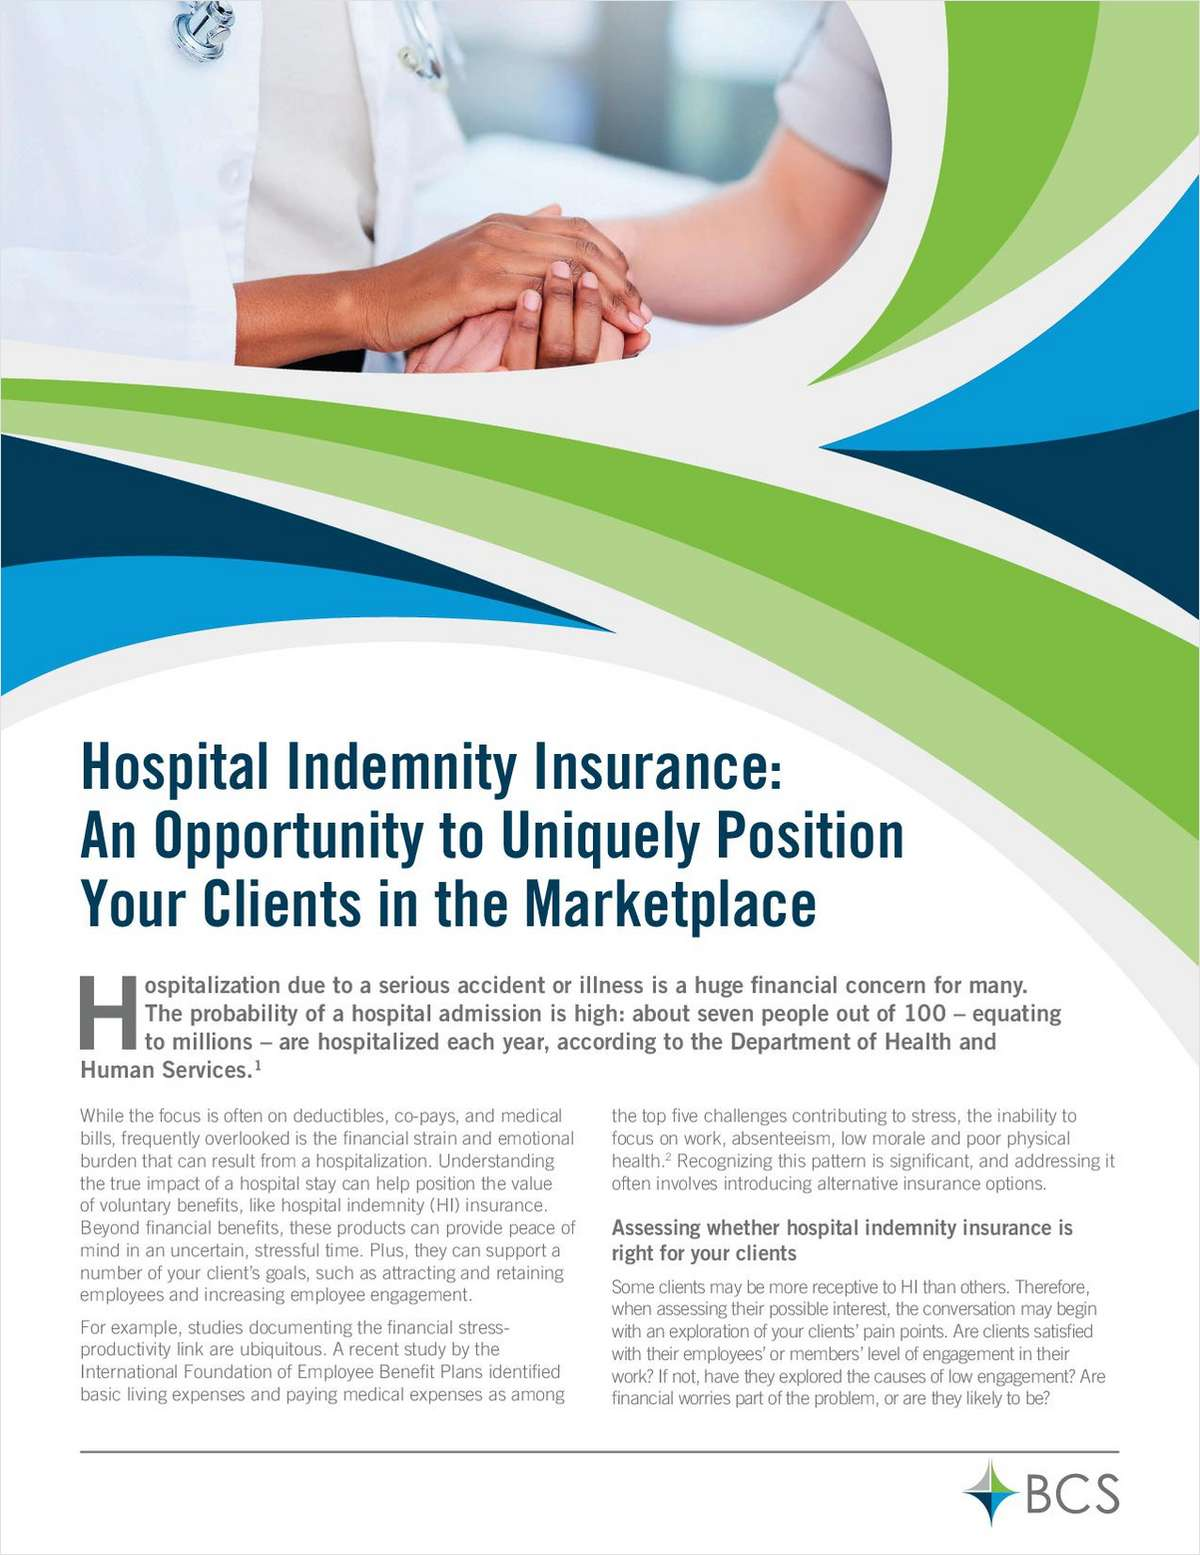 Hospital Indemnity Insurance: An Opportunity to Uniquely Position Your Clients in the Marketplace